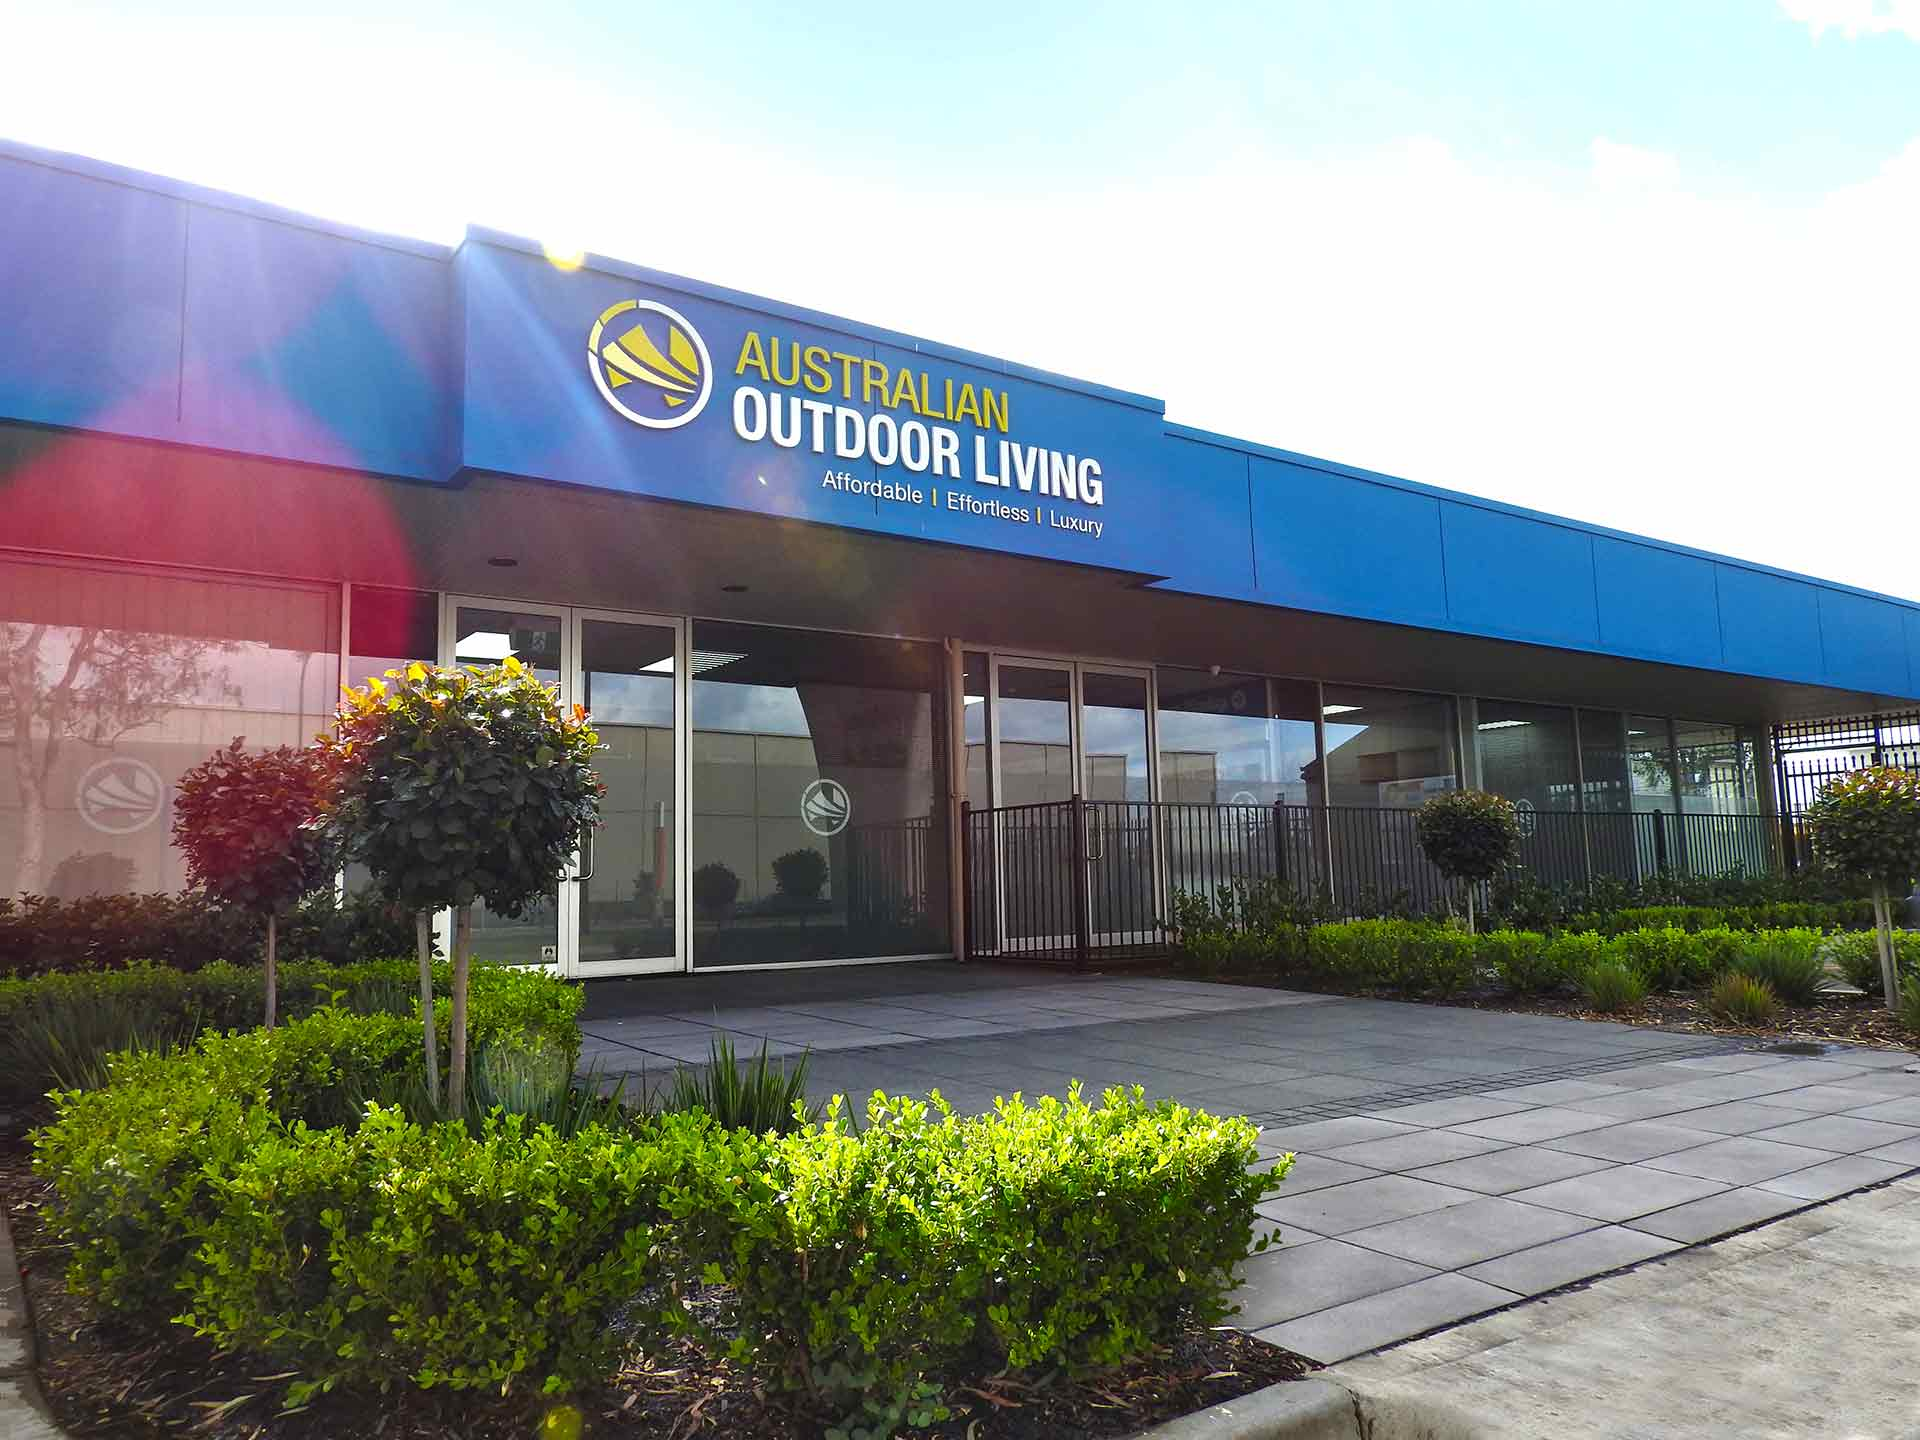 Outdoor Home Improvements & Additions | Australian Outdoor ... on Aust Outdoor Living id=67344